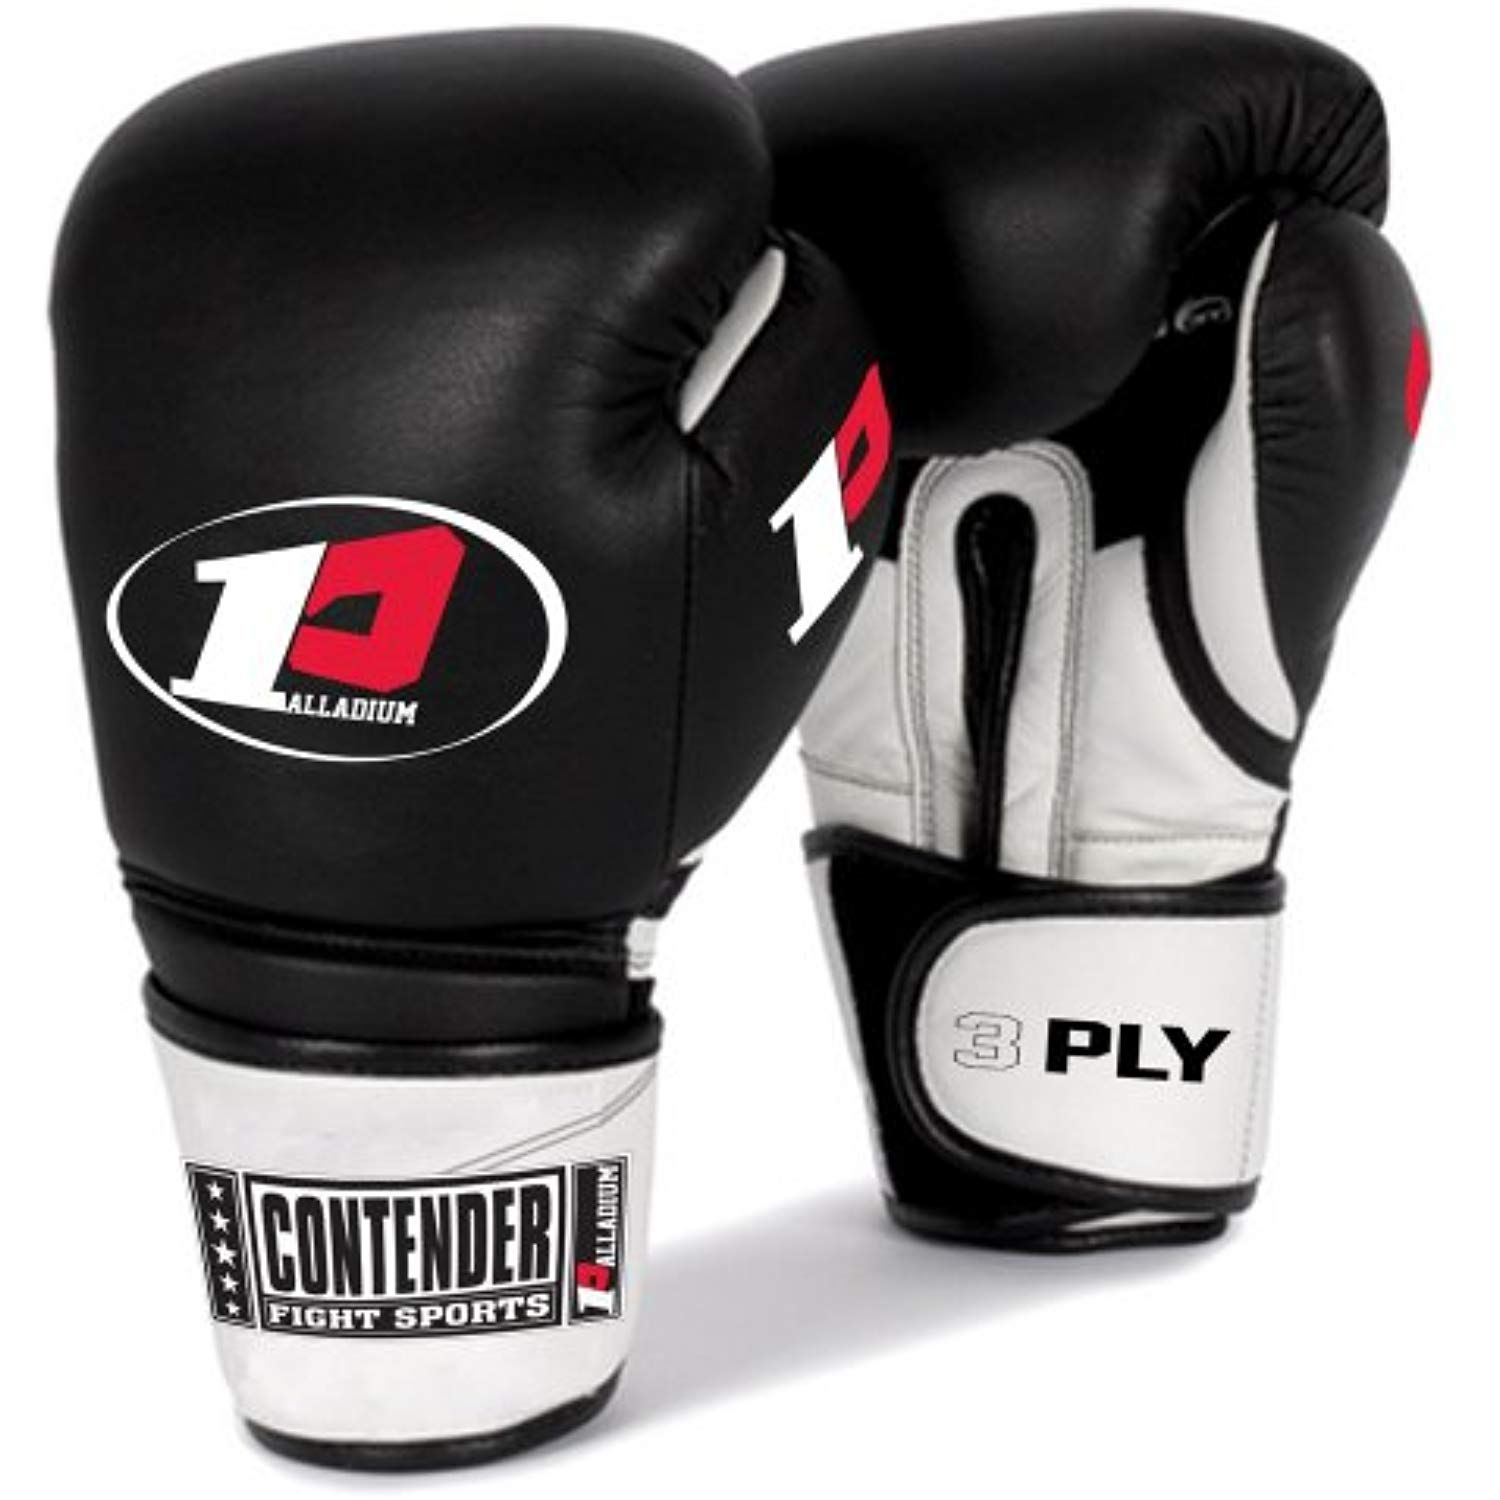 Contender fight sports palladium extreme bag gloves be